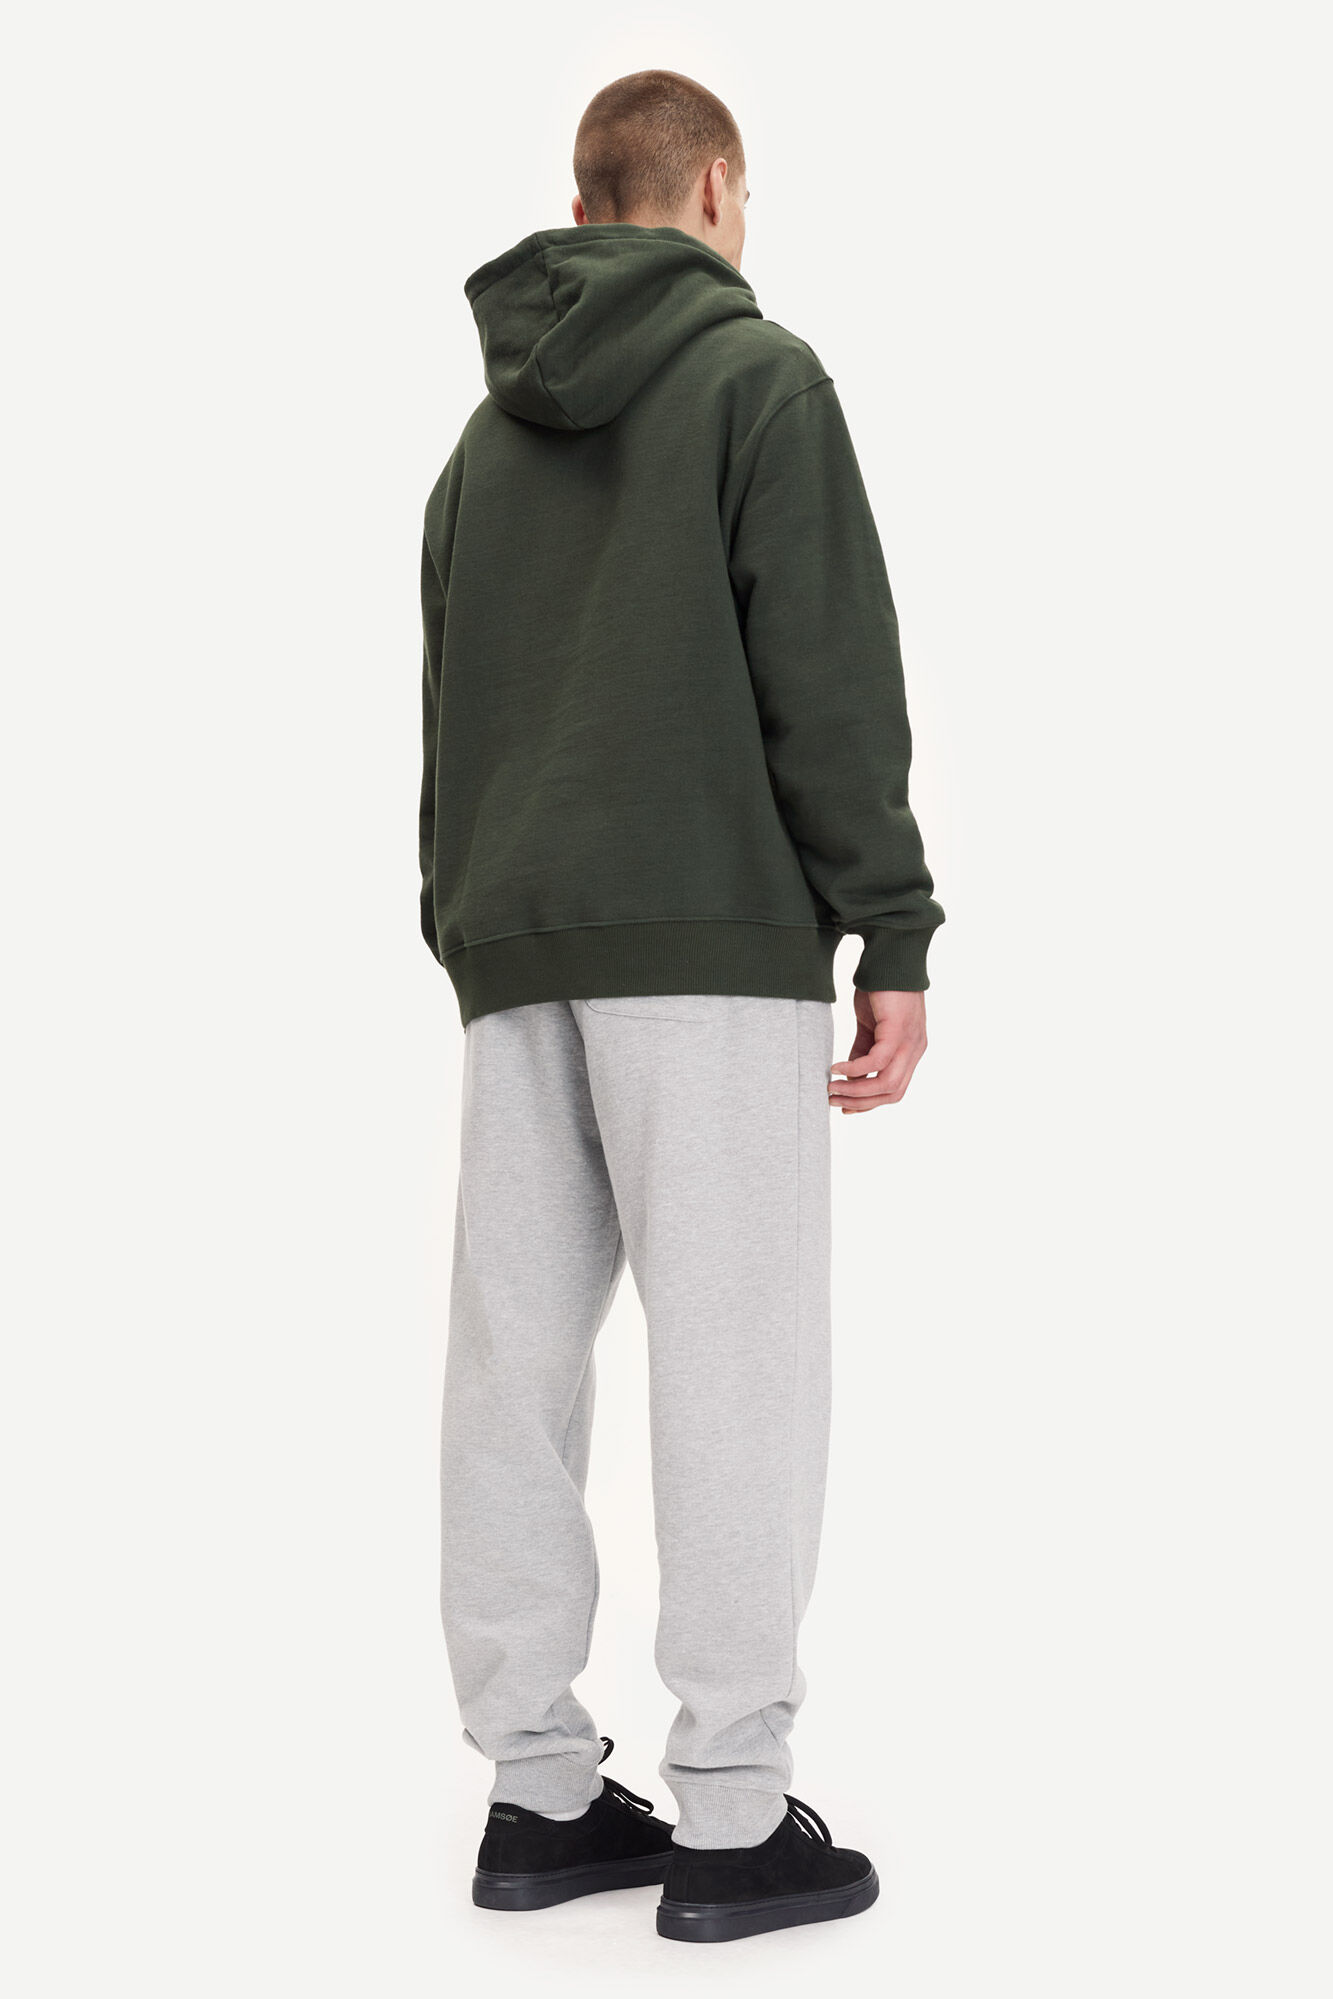 Norsbro trousers 11727